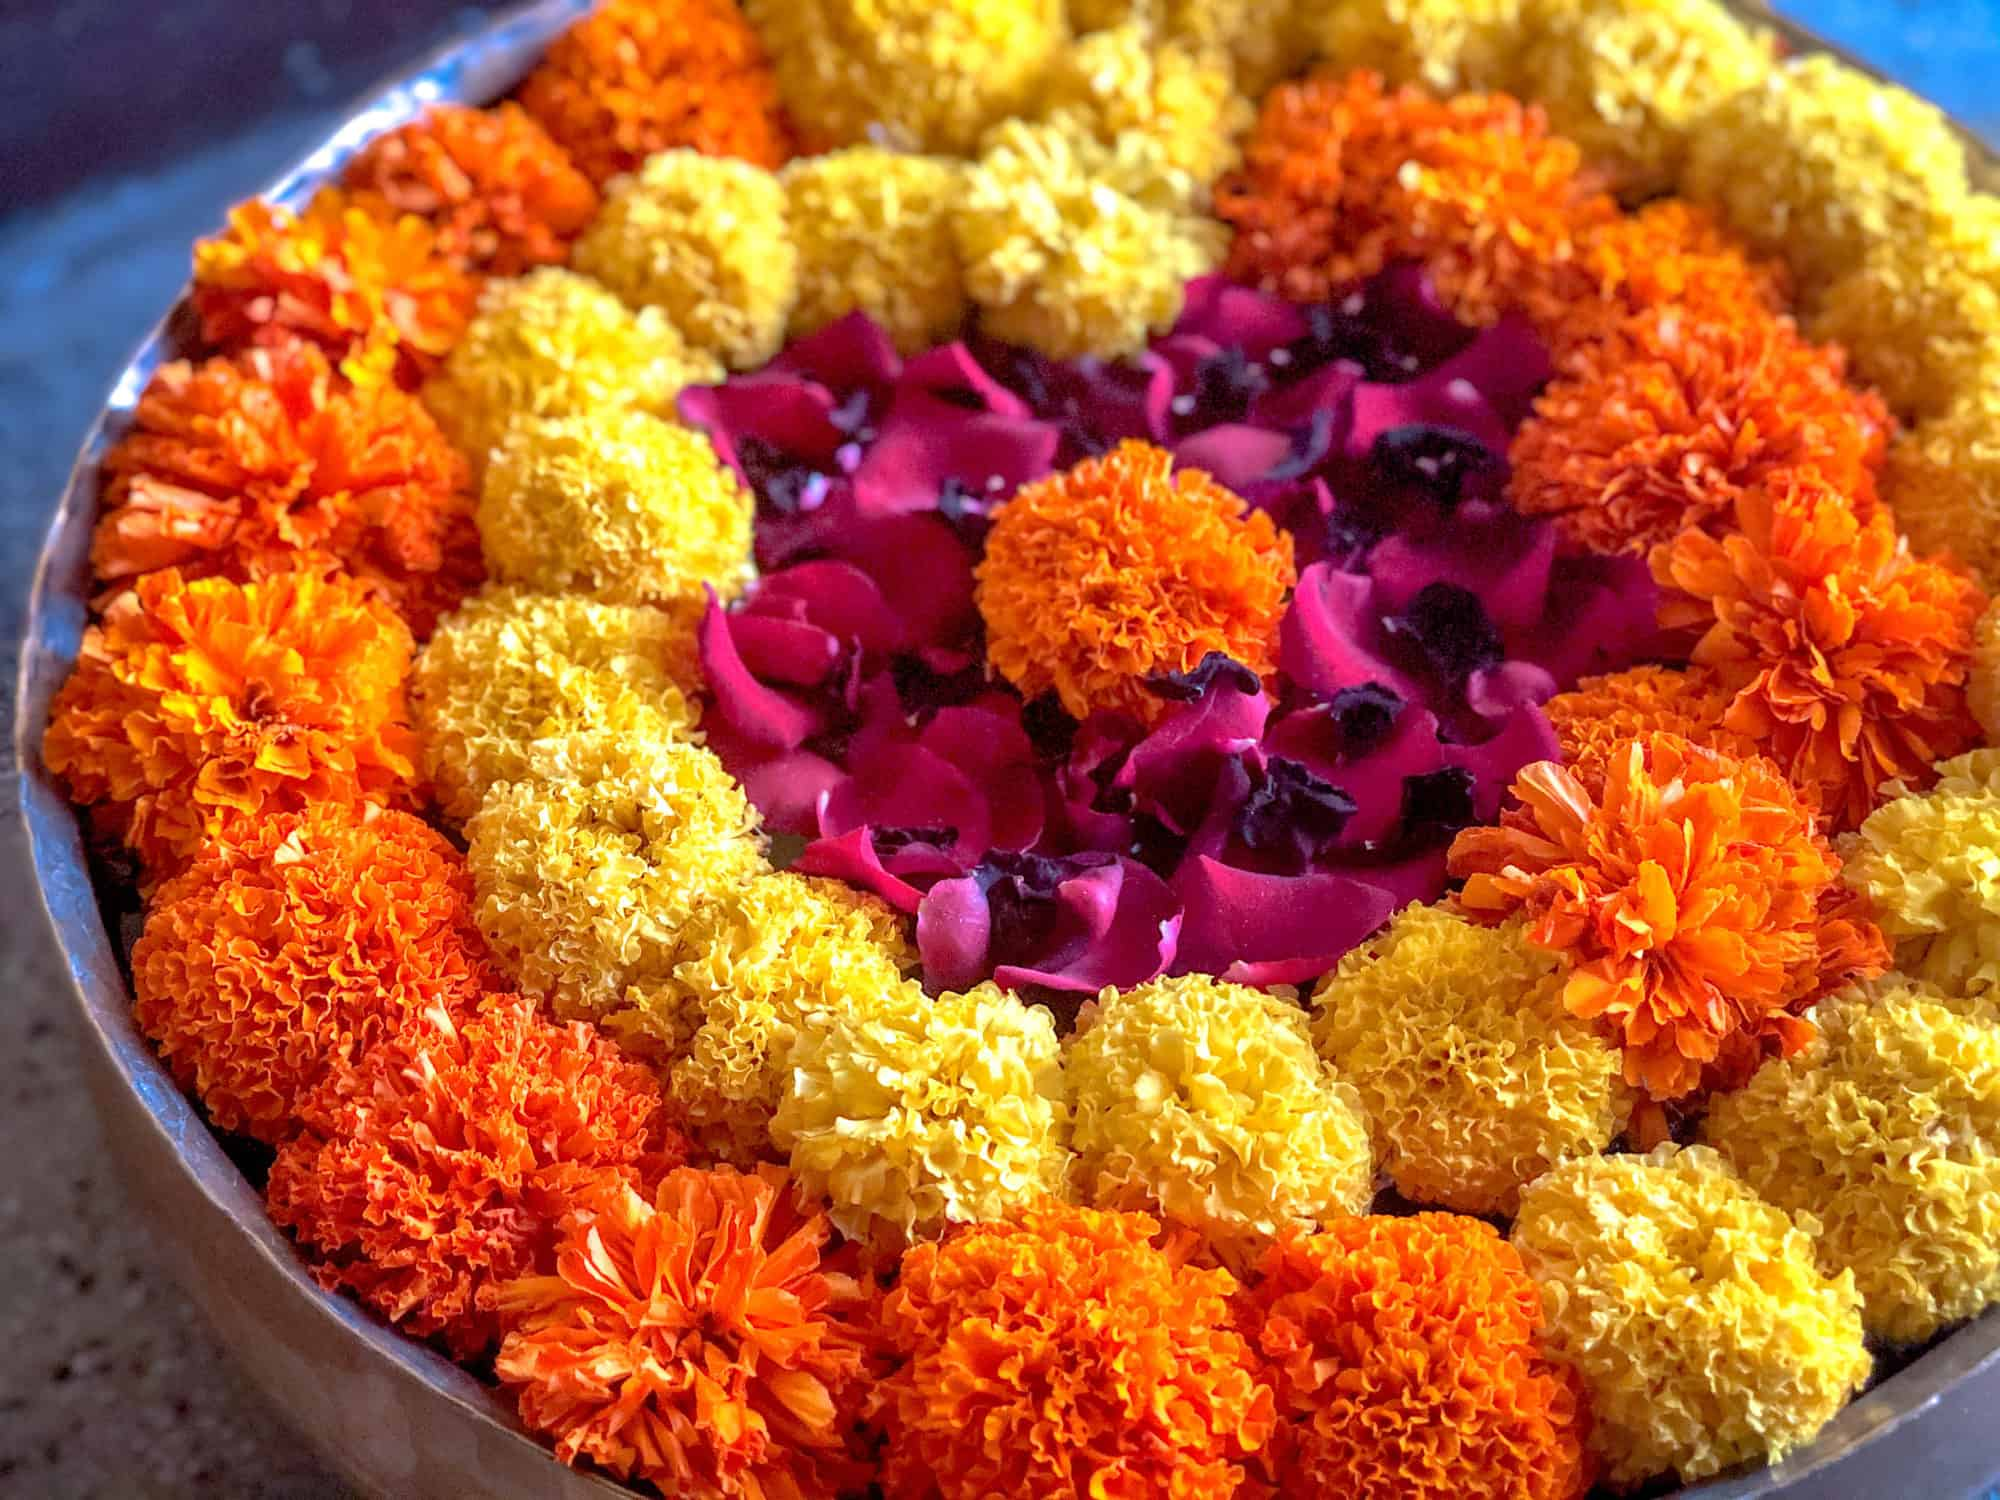 India - Karnataka -Mysore - Welcoming flower garlands